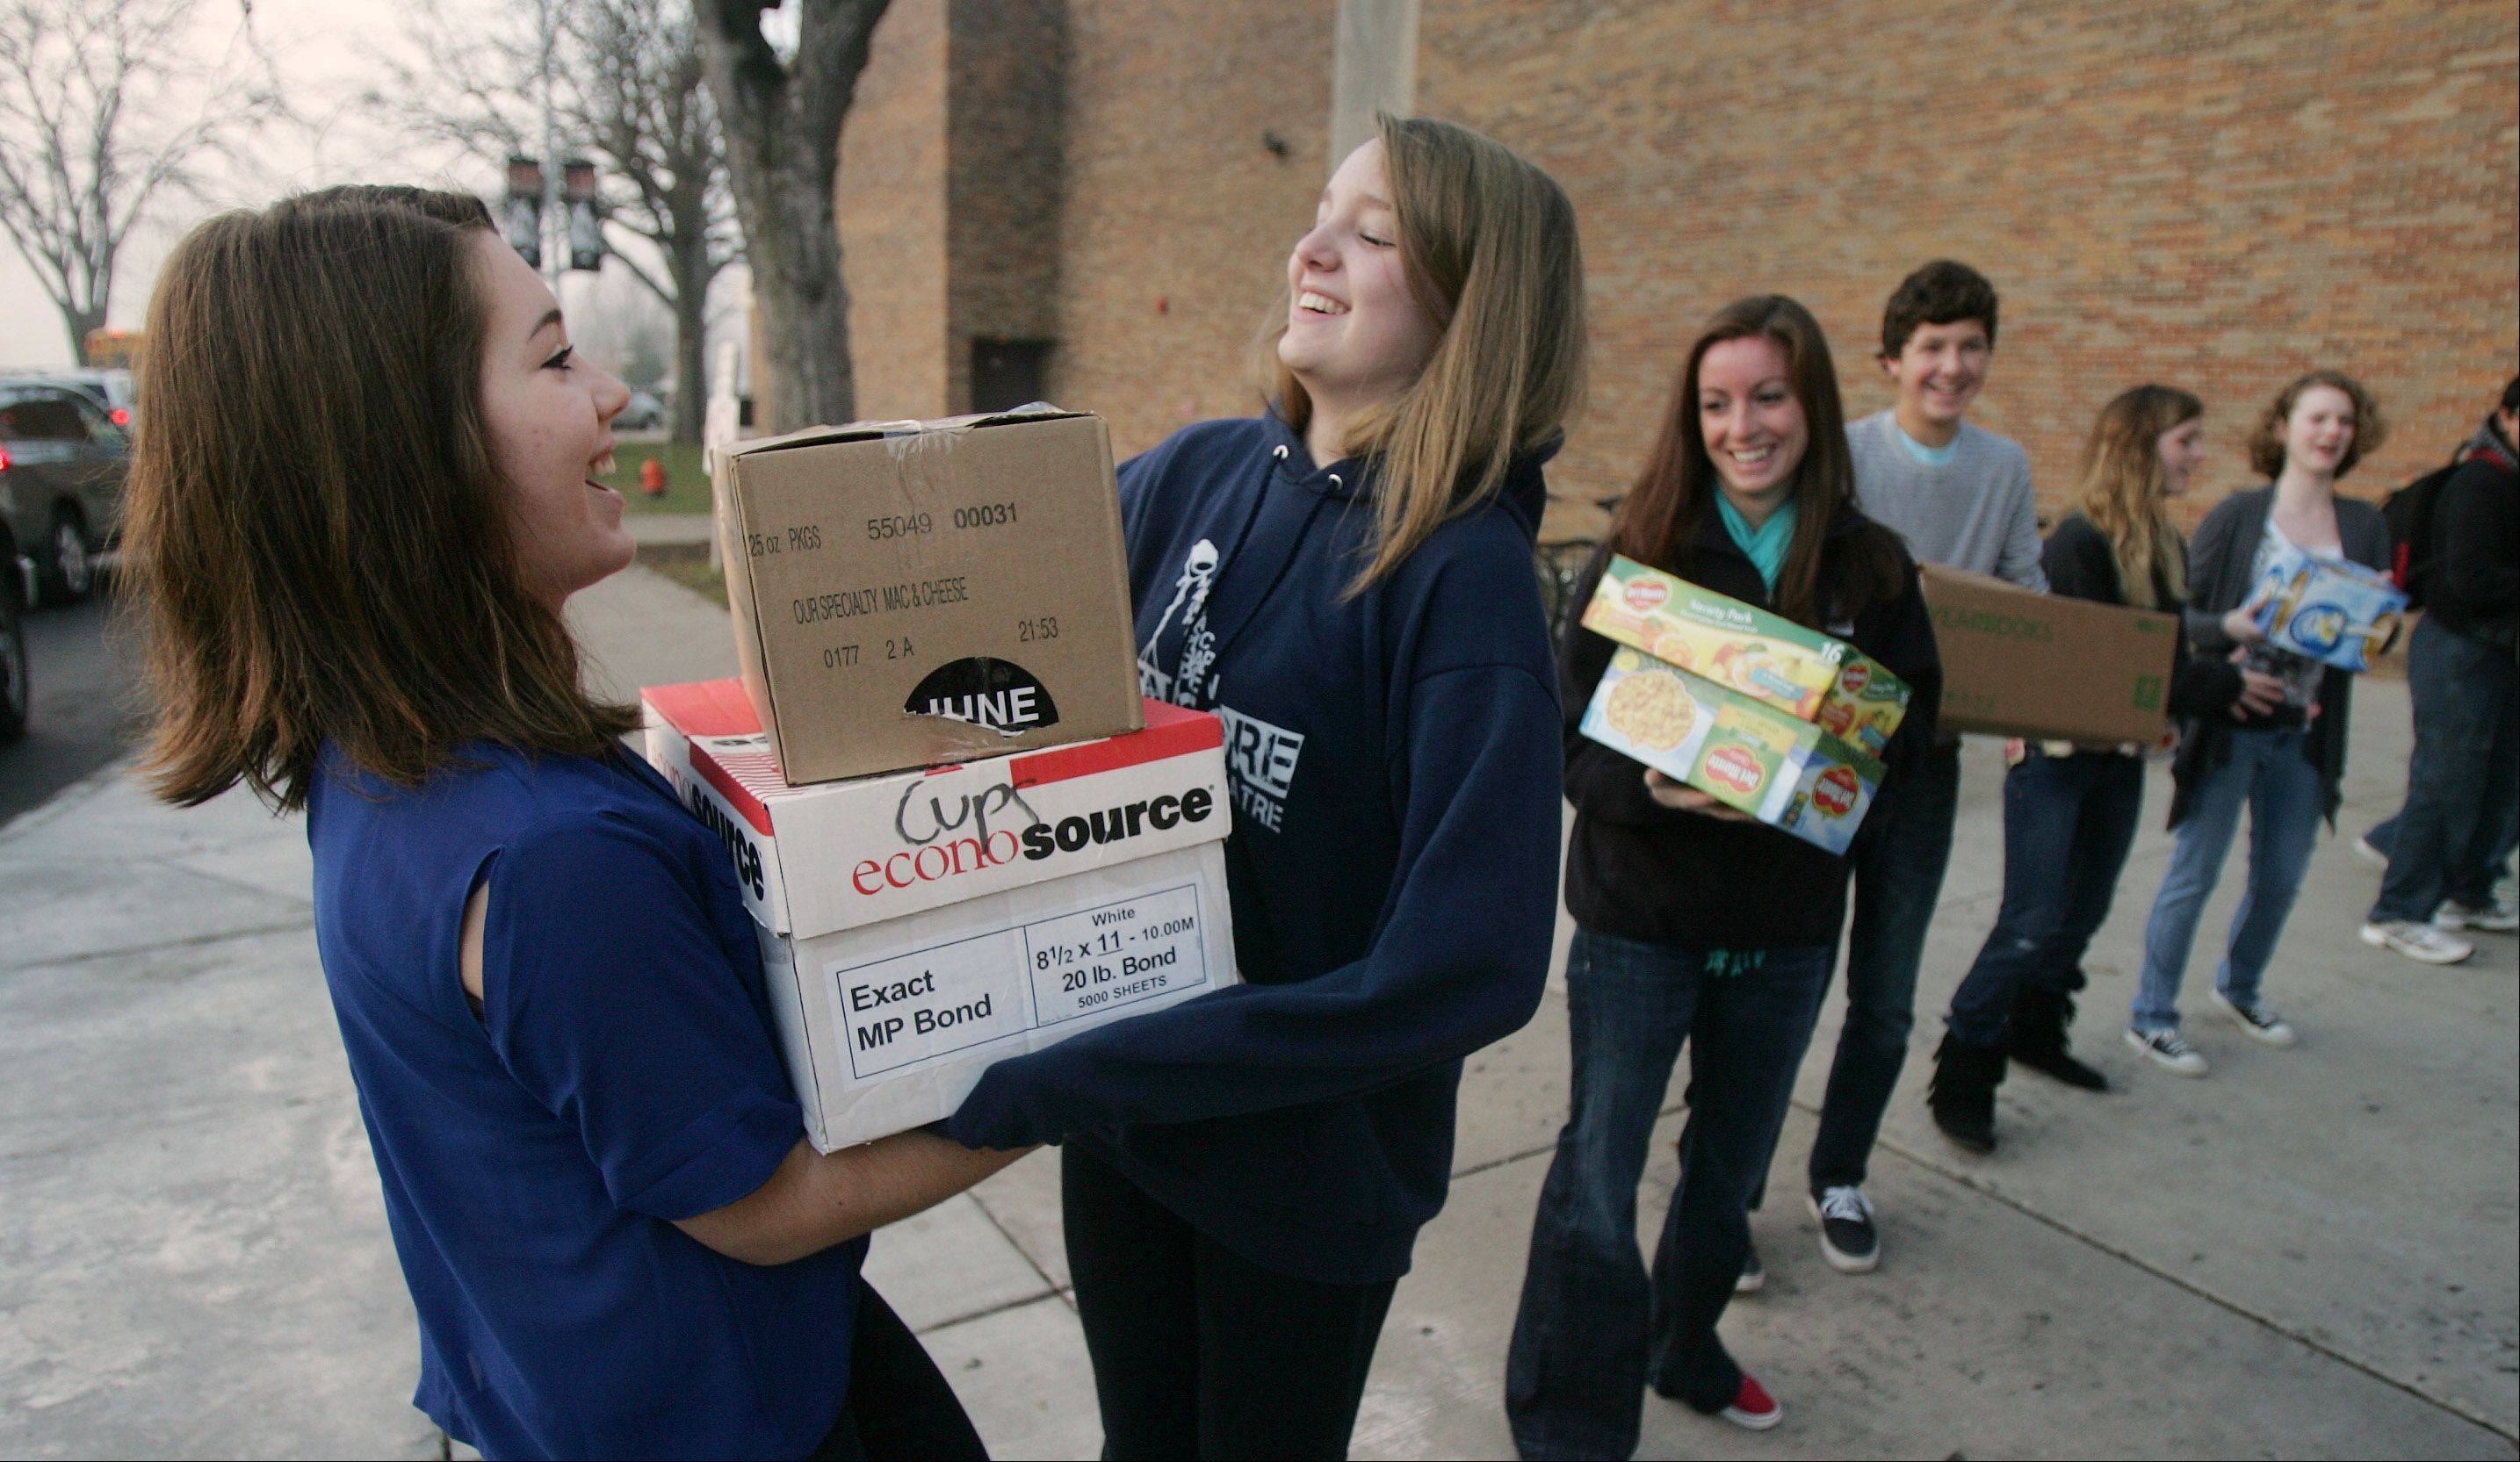 Libertyville High School sophomore Madison Basich receives a box from freshman Taylor Skie on Wednesday as students form a human chain to load up trucks with items being donated to the Libertyville Township food pantry.